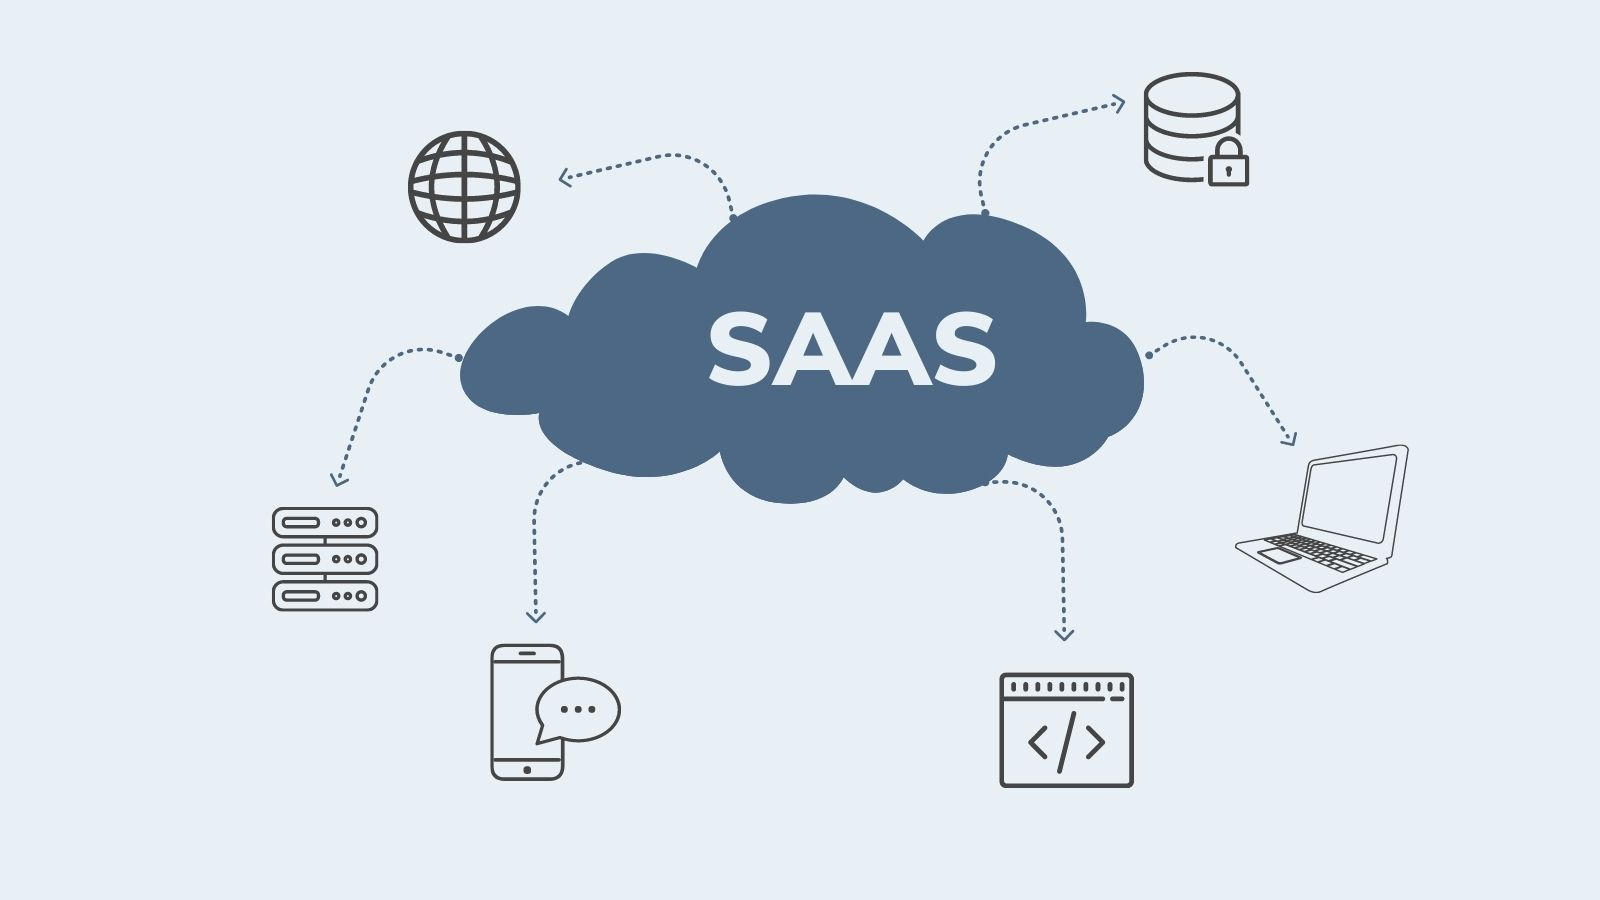 Elements of SAAS on agilitycms.com